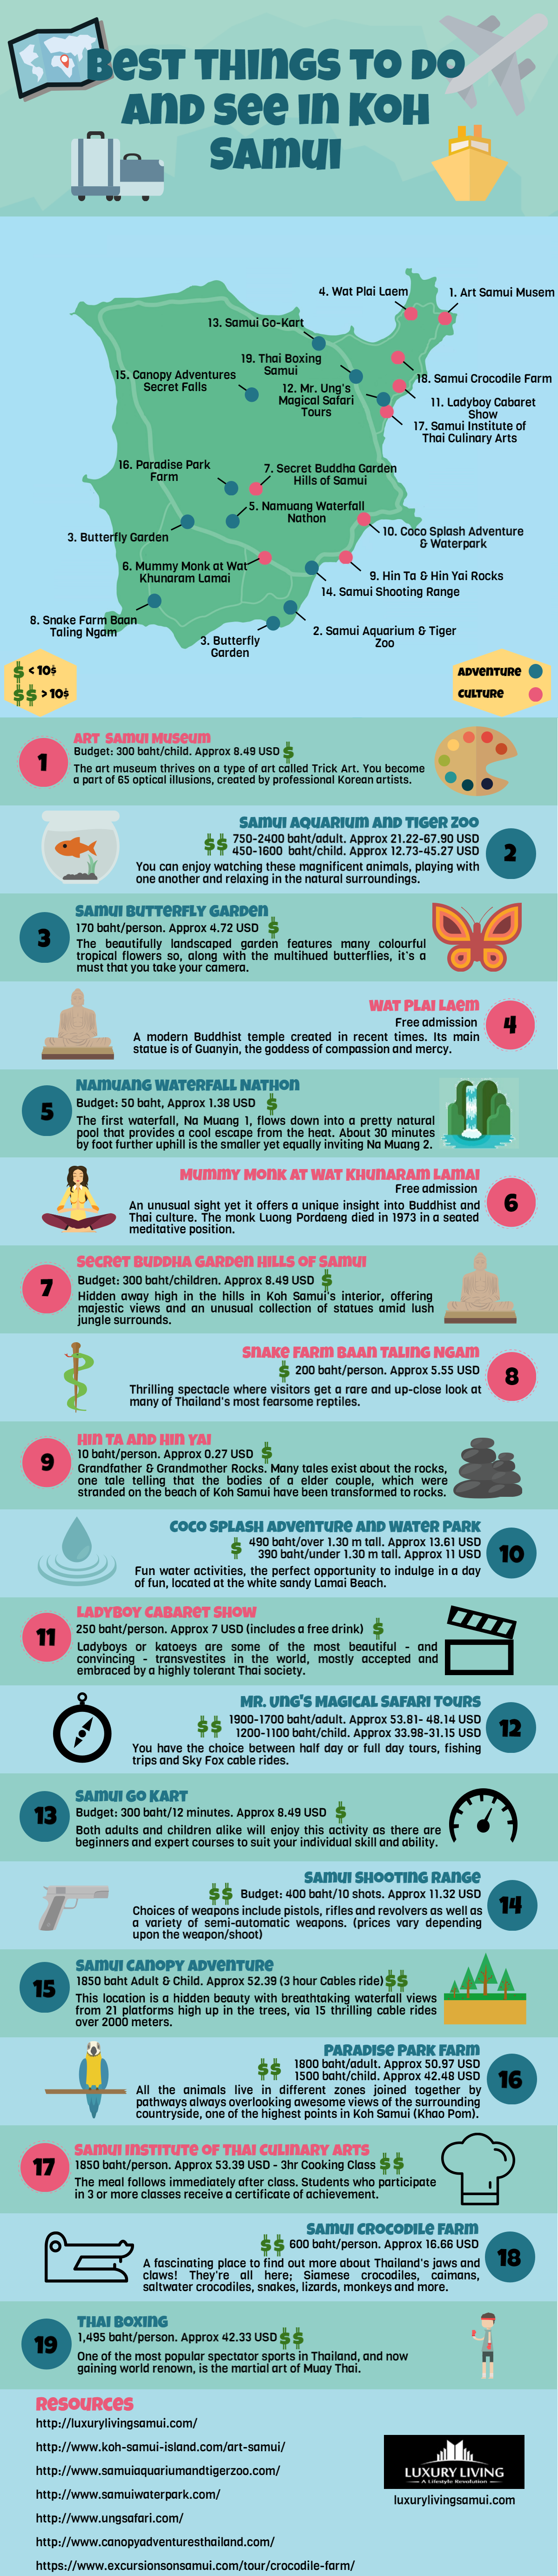 19 Must-Sees and Must-Dos in Thailand's Island Paradise: Koh Samui - Infographic